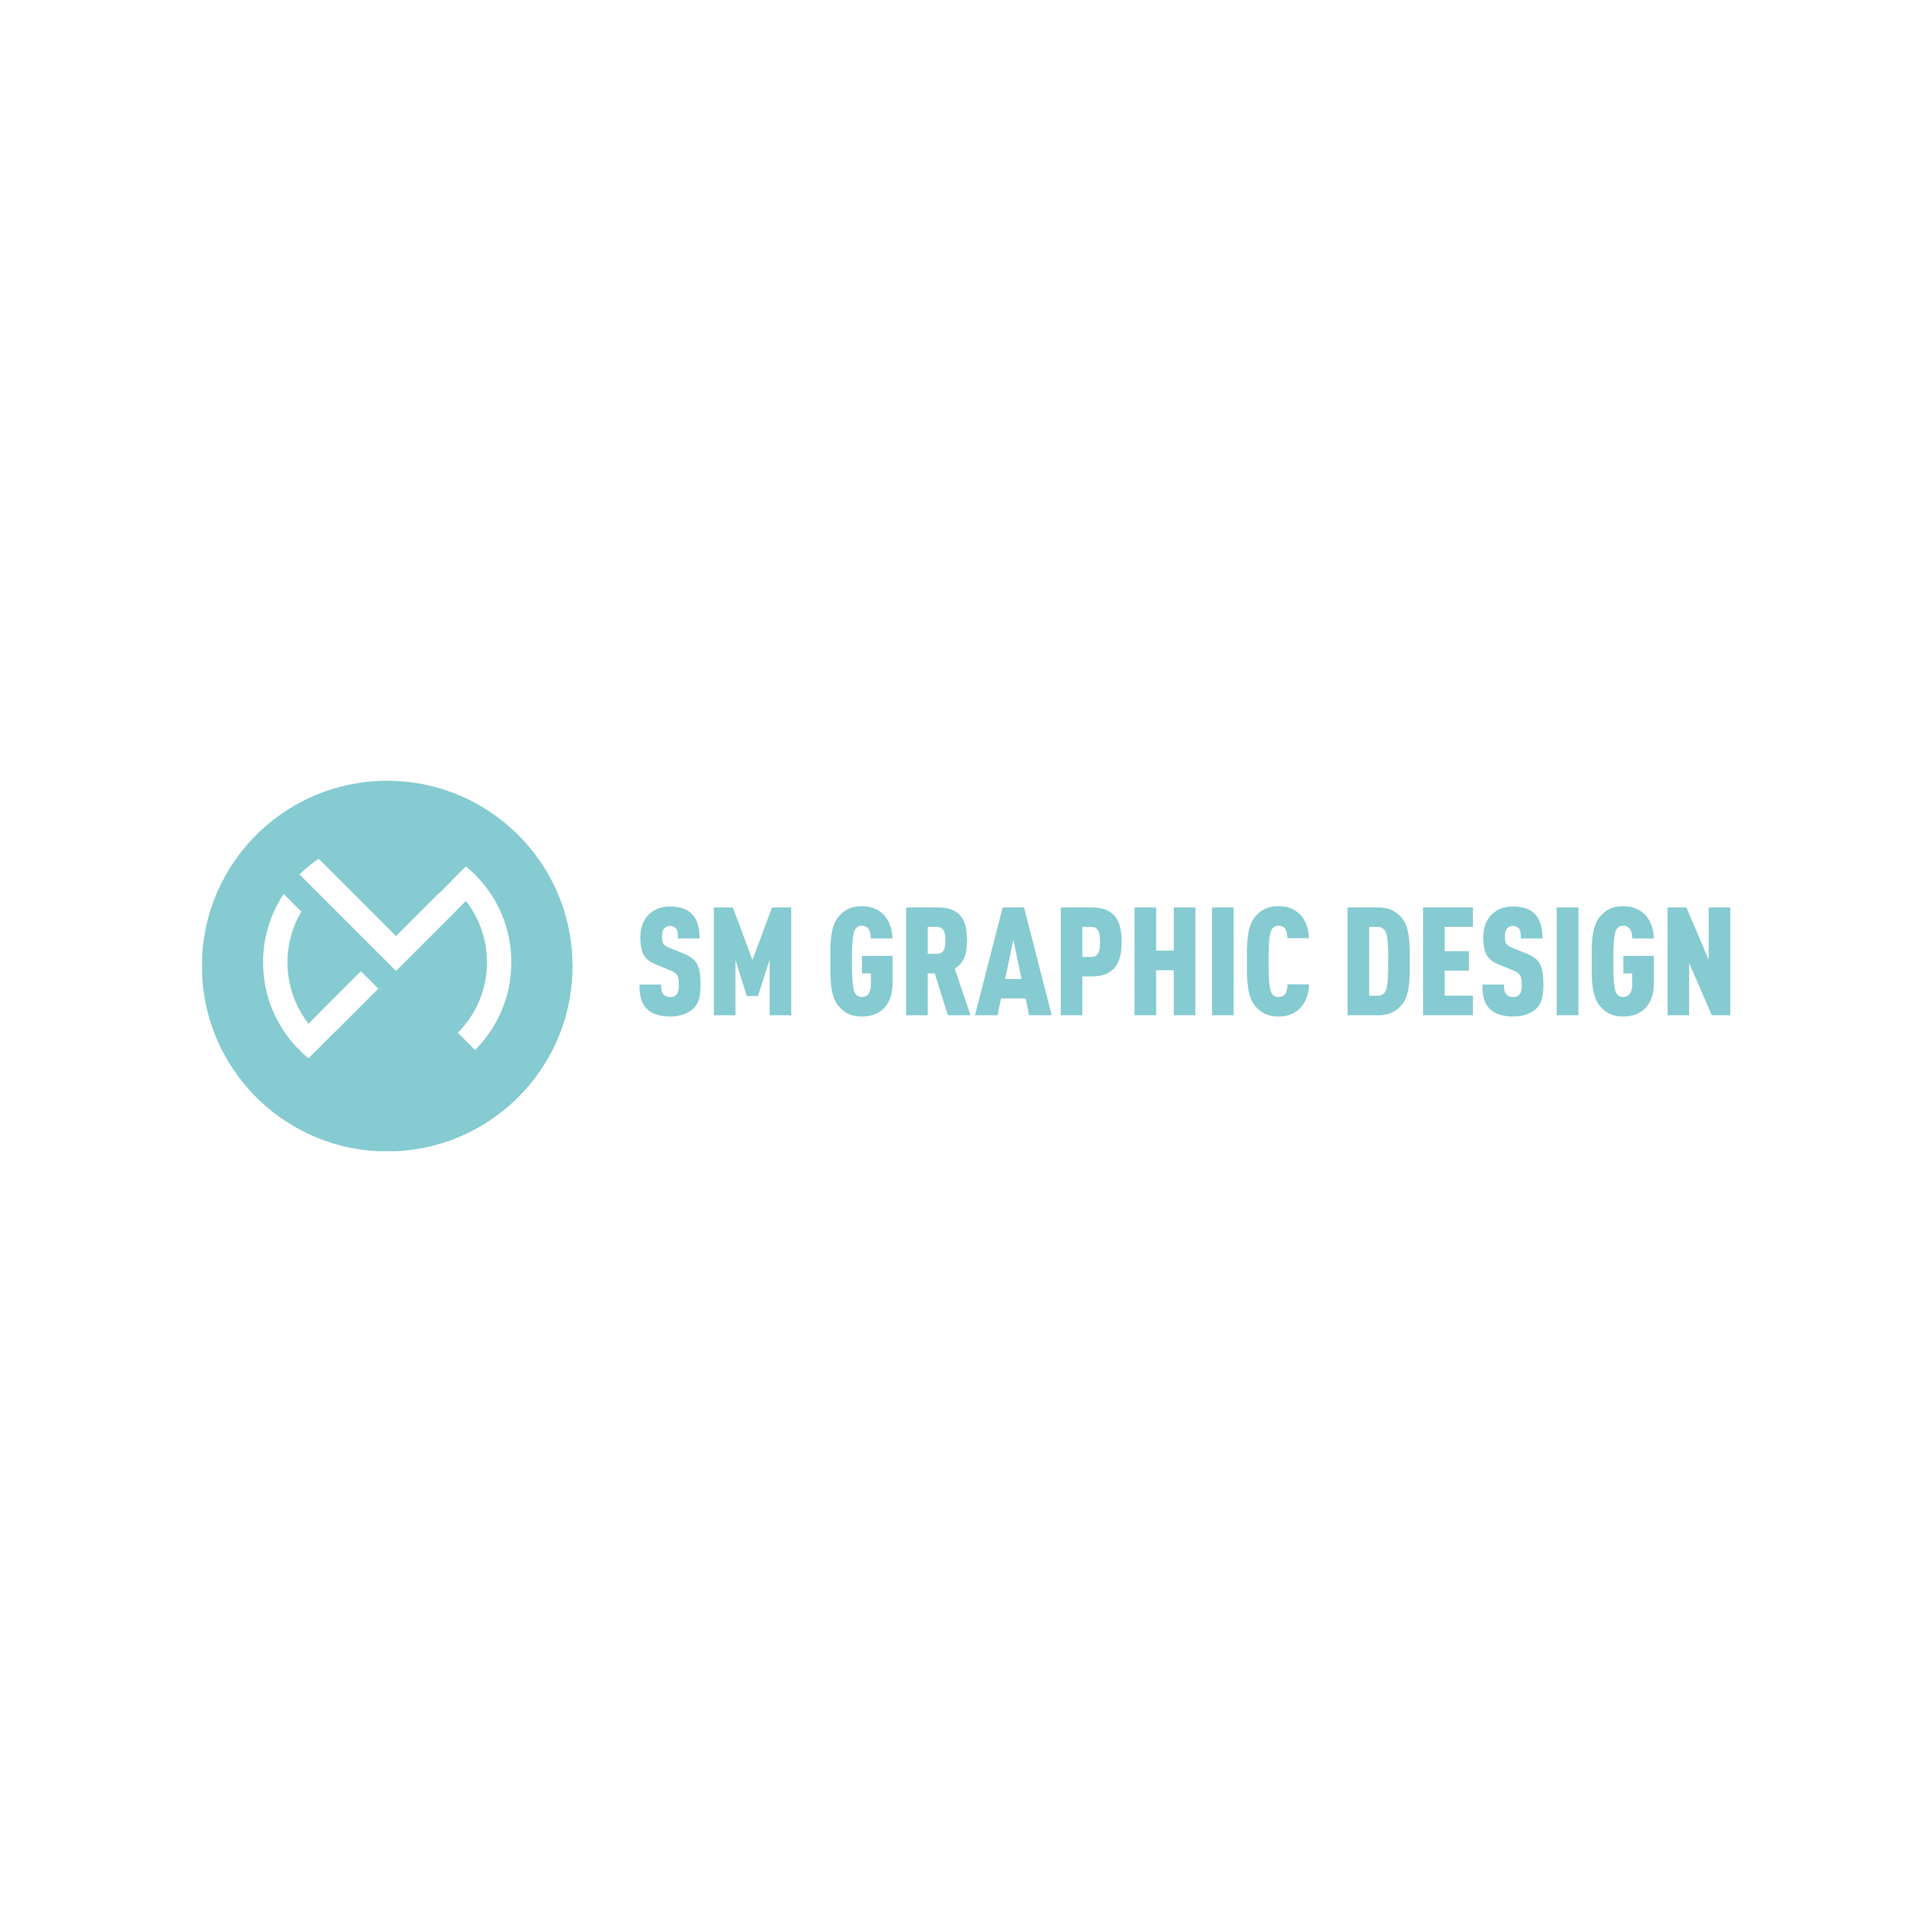 Logo SM Graphic Design